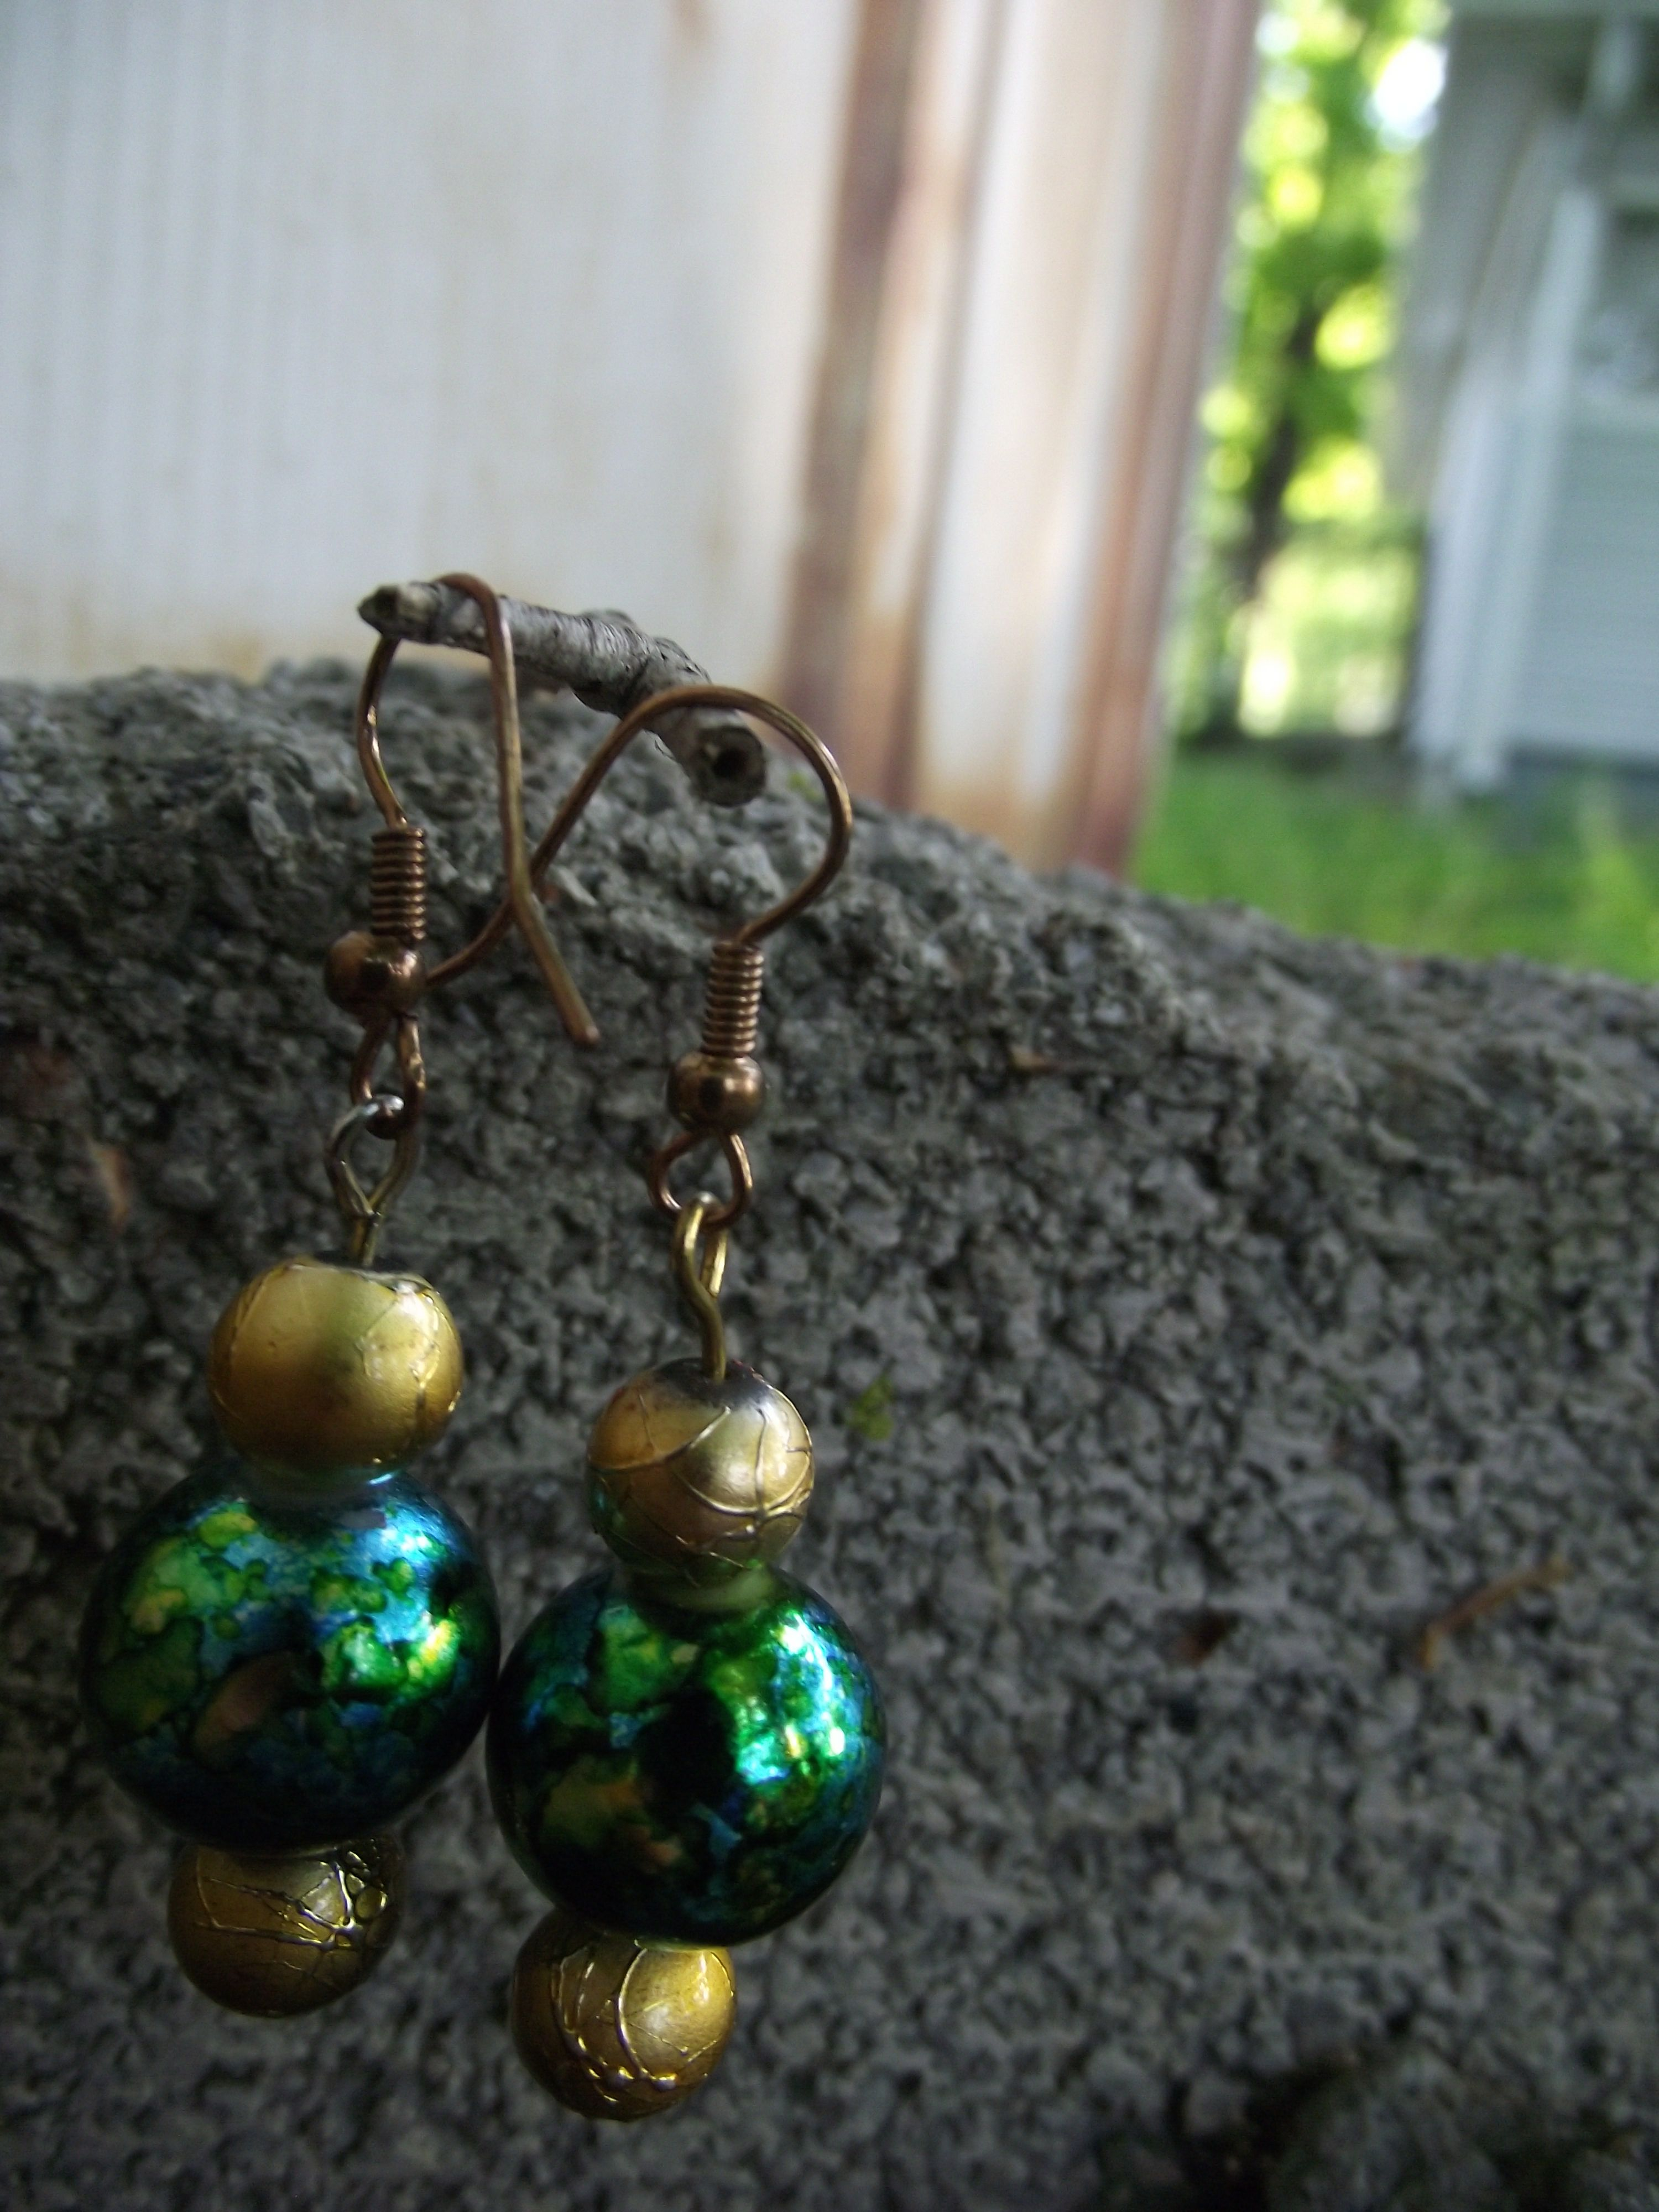 Buy me for eight dollars at https://www.etsy.com/listing/172855565/gold-makes-the-world-go-round?ref=related-5